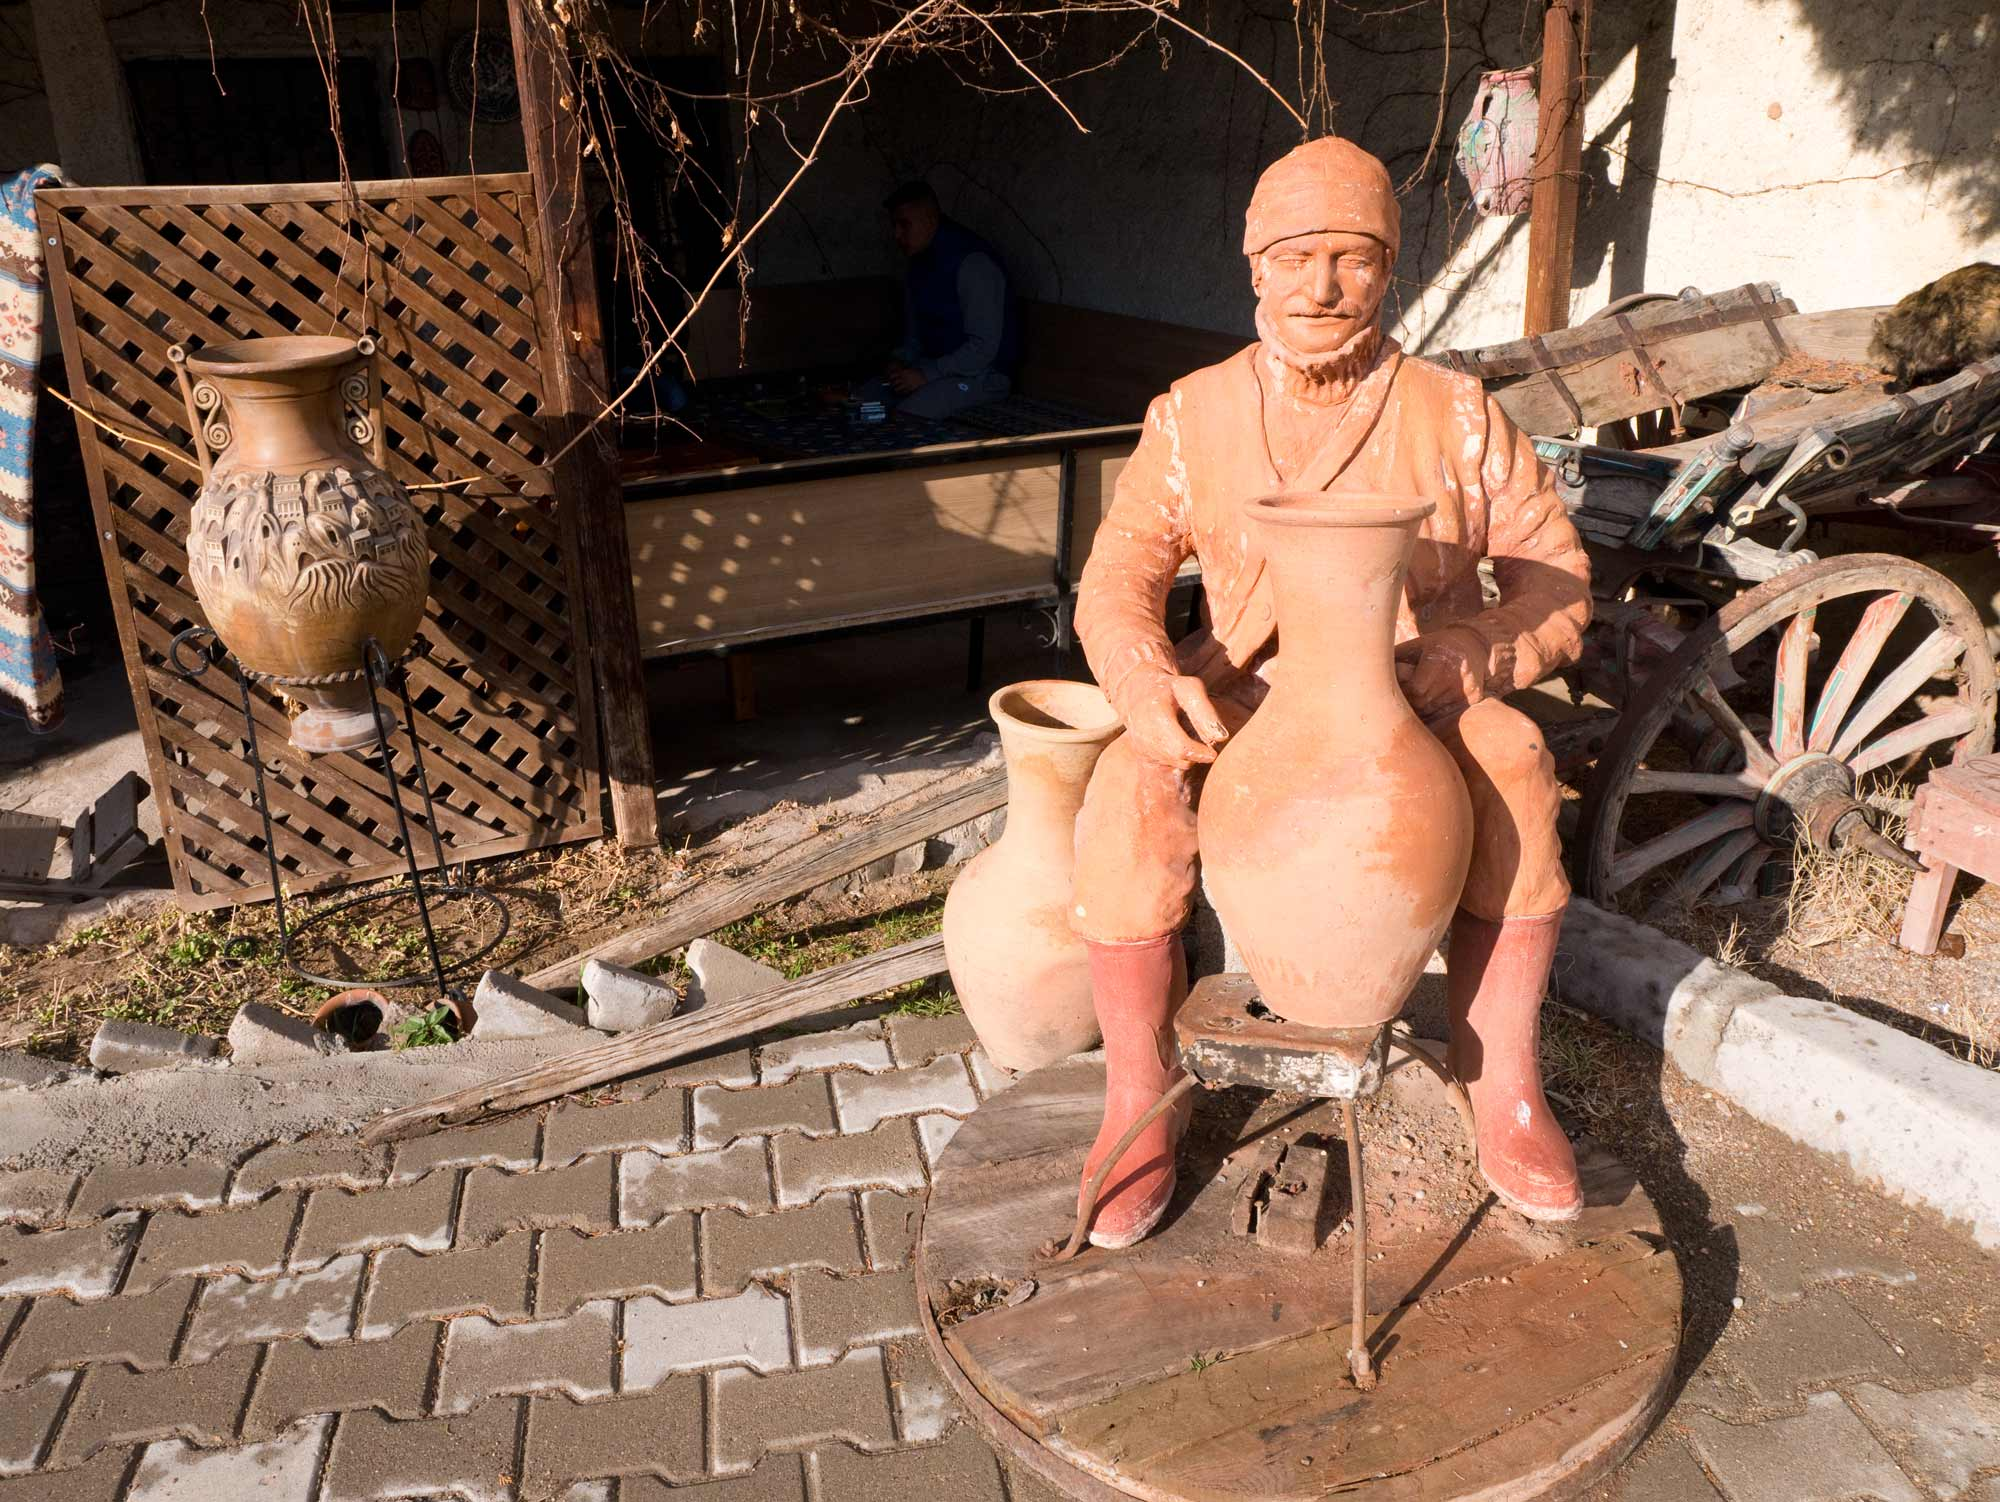 travel-turk-potter-statue.jpg